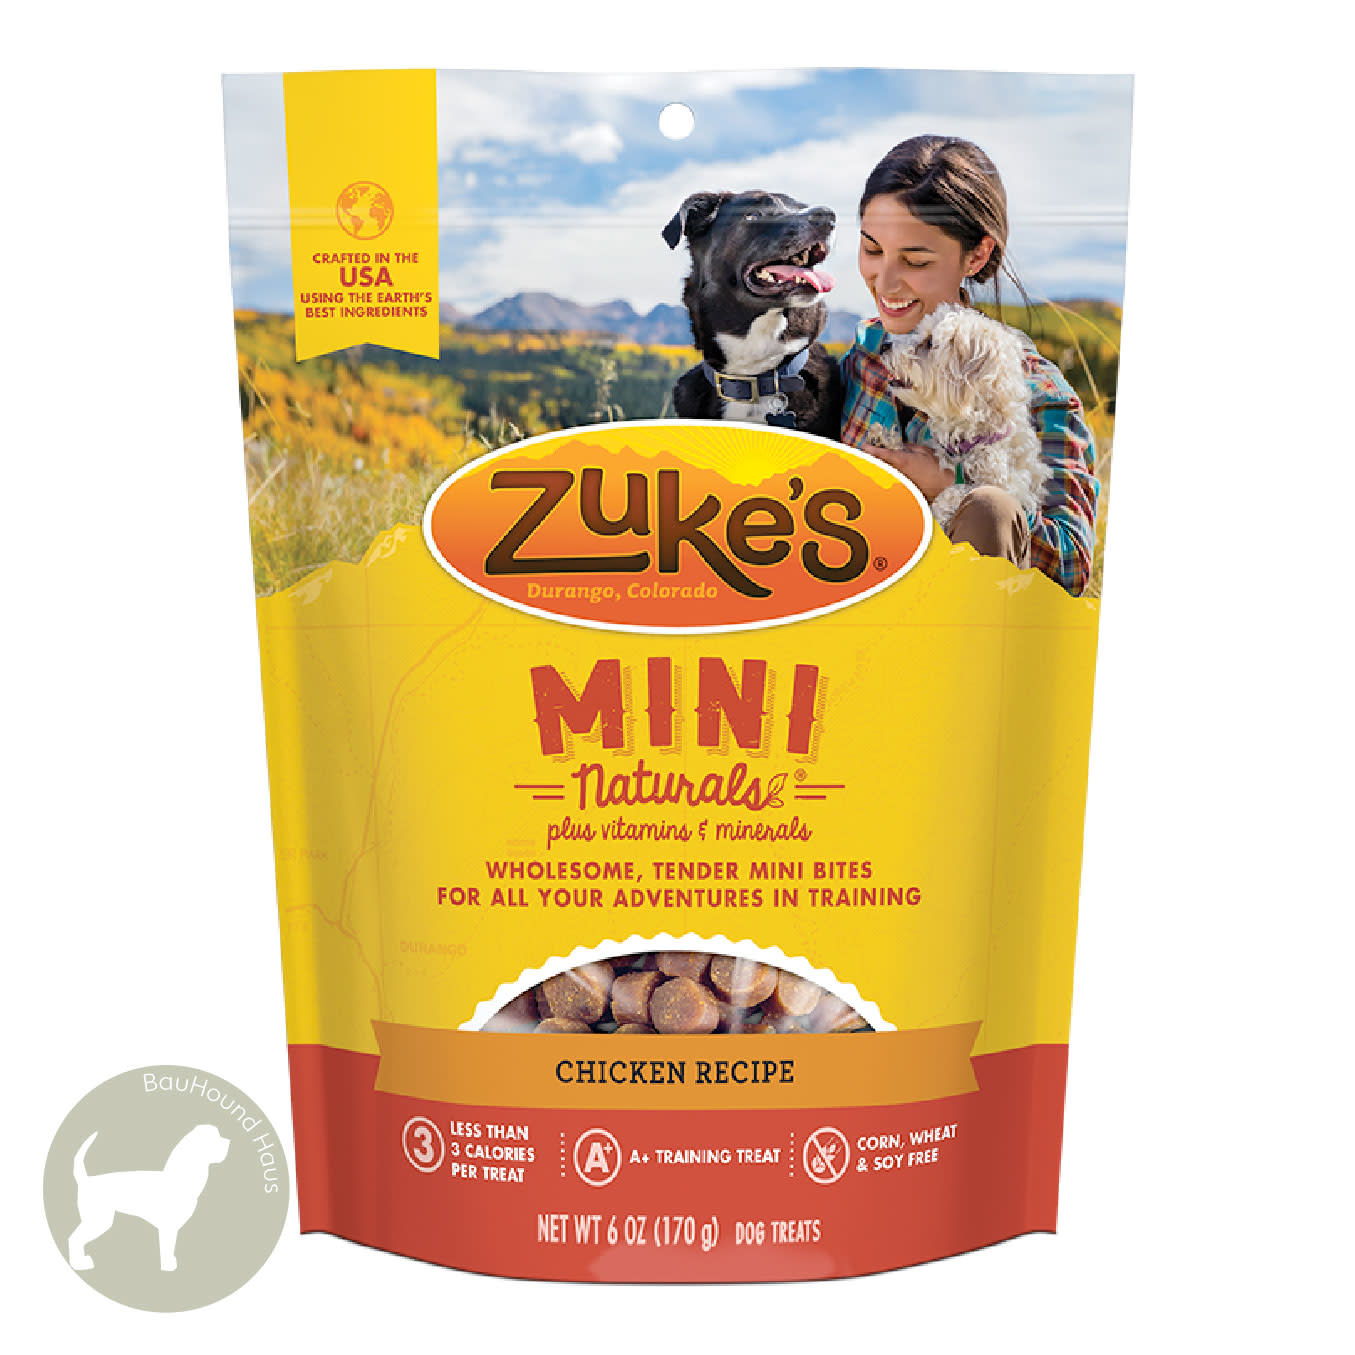 Zukes Zukes Mini Naturals Chicken Treats, 6oz